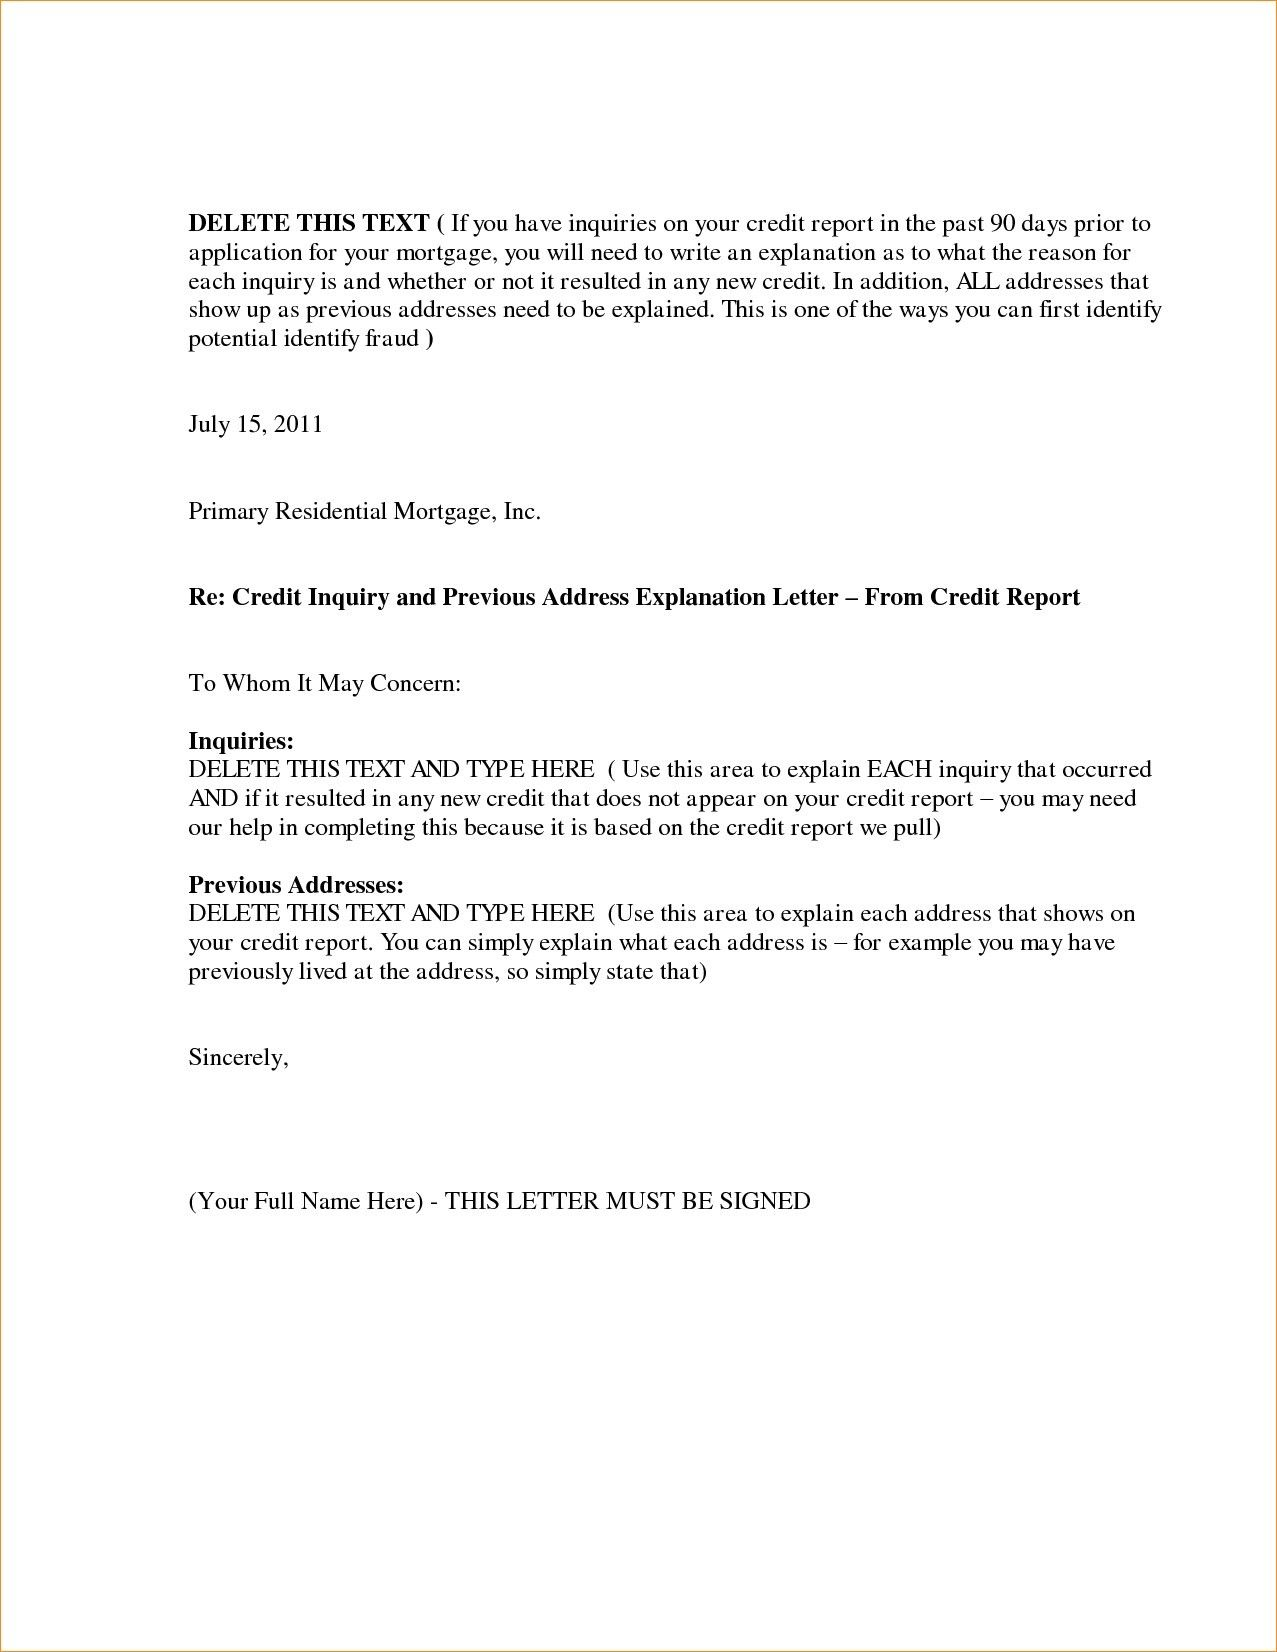 You Can See This New Request Explanation Letter format At